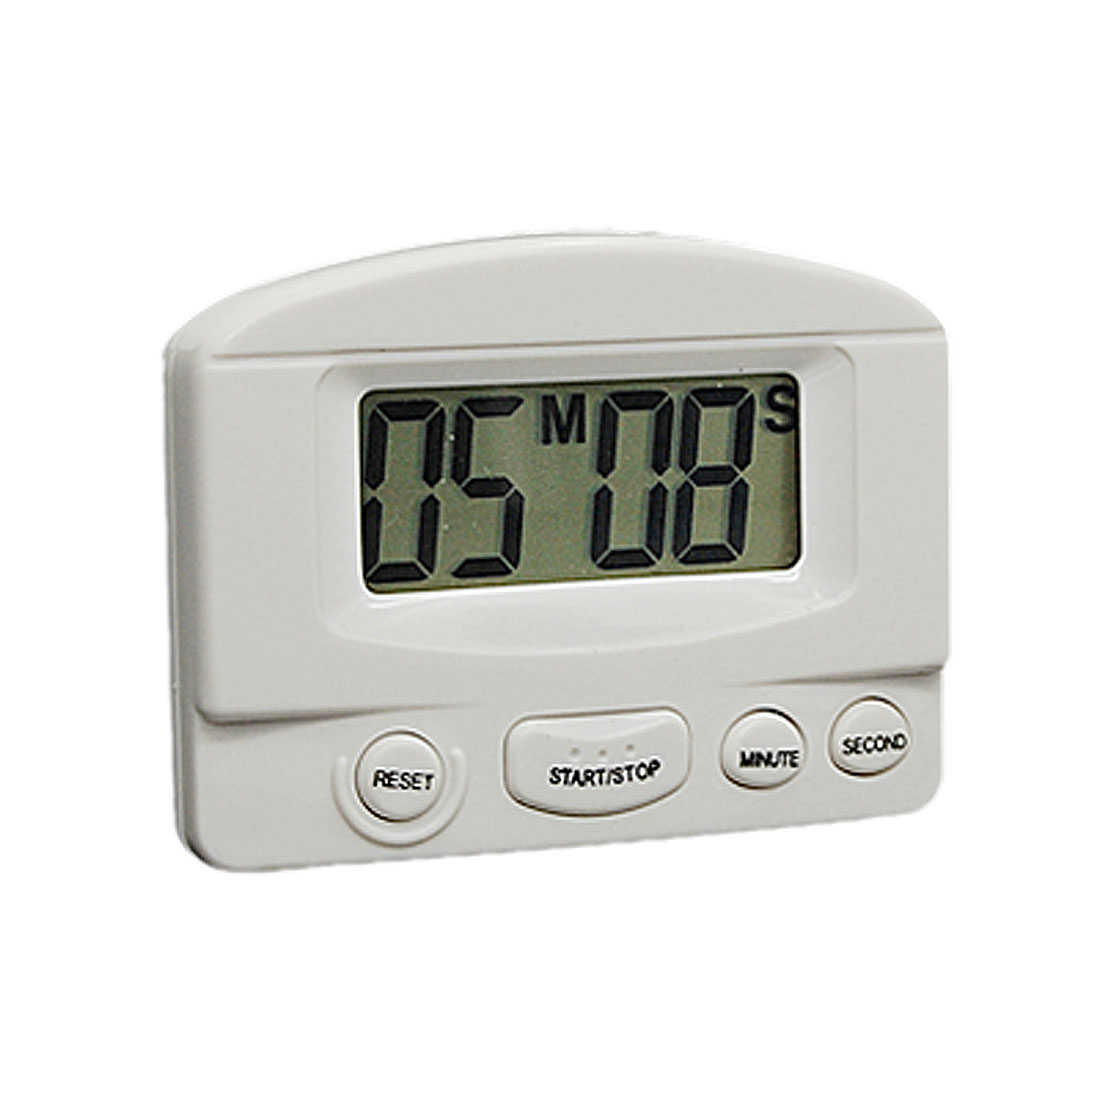 White Handy LCD Digital Kitchen Count Up Down Alarm Timer